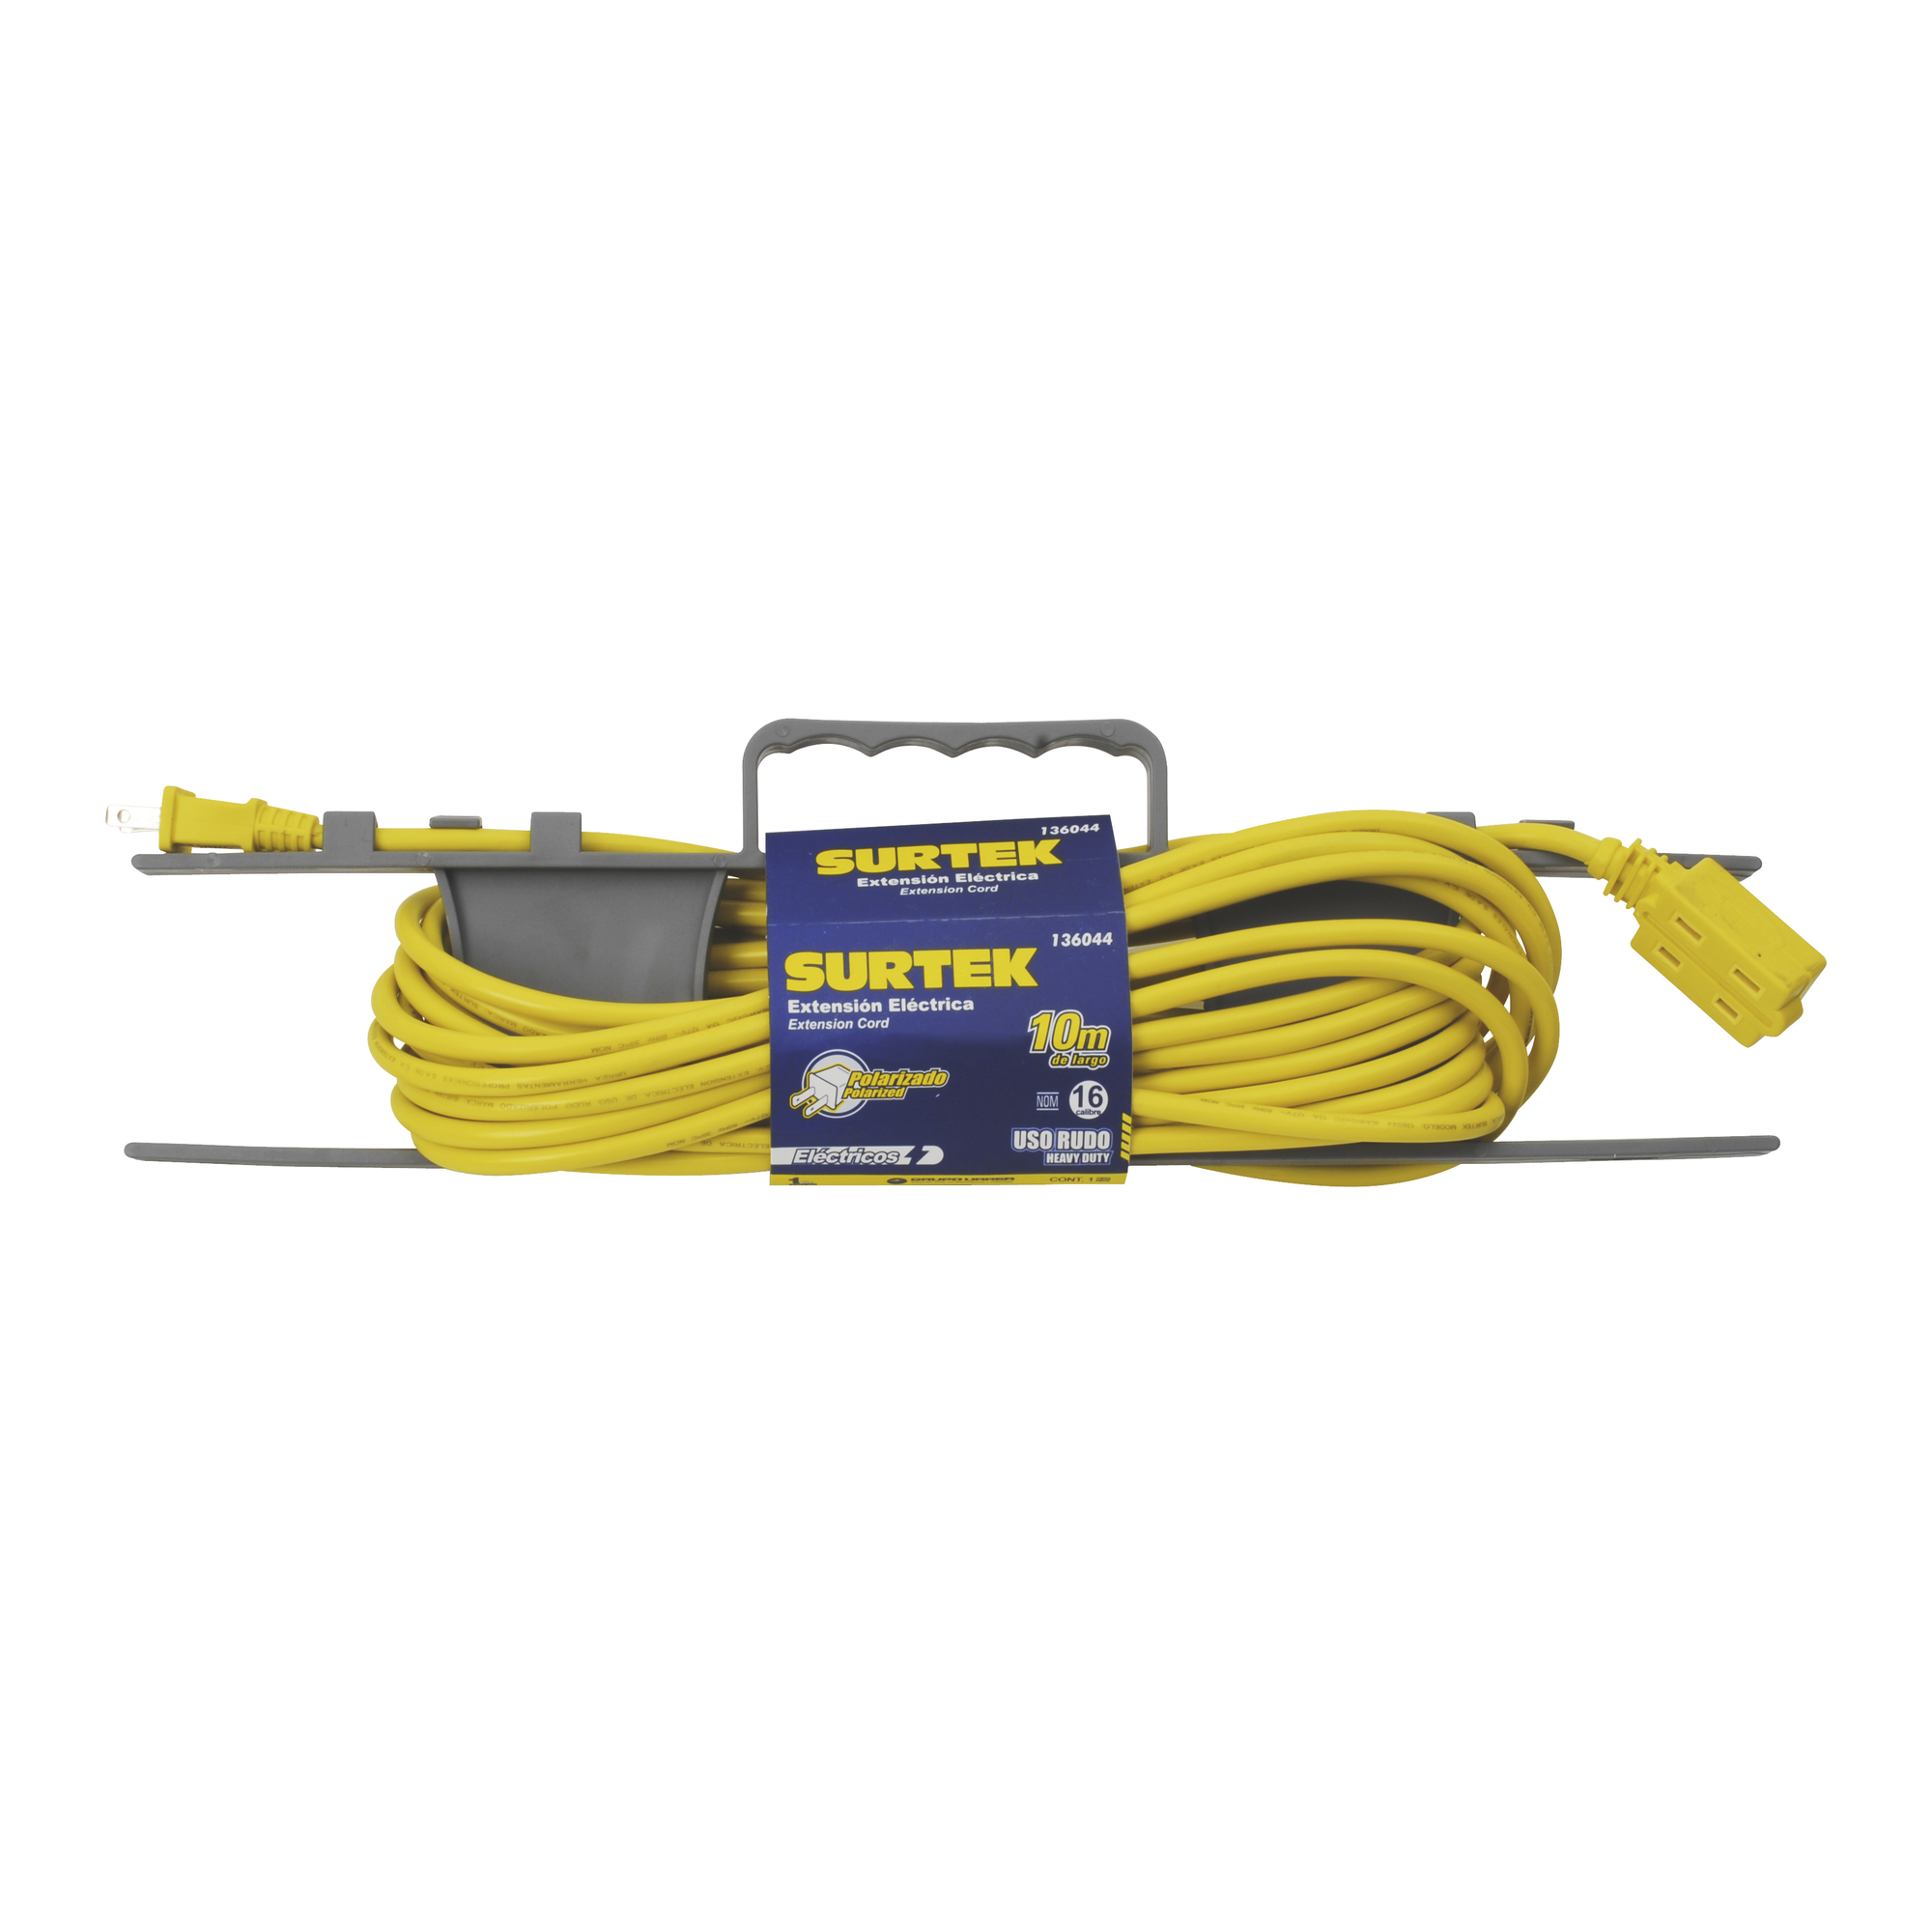 Extension electrica uso rudo 127vca L-N 6m 3 tomas 13A max